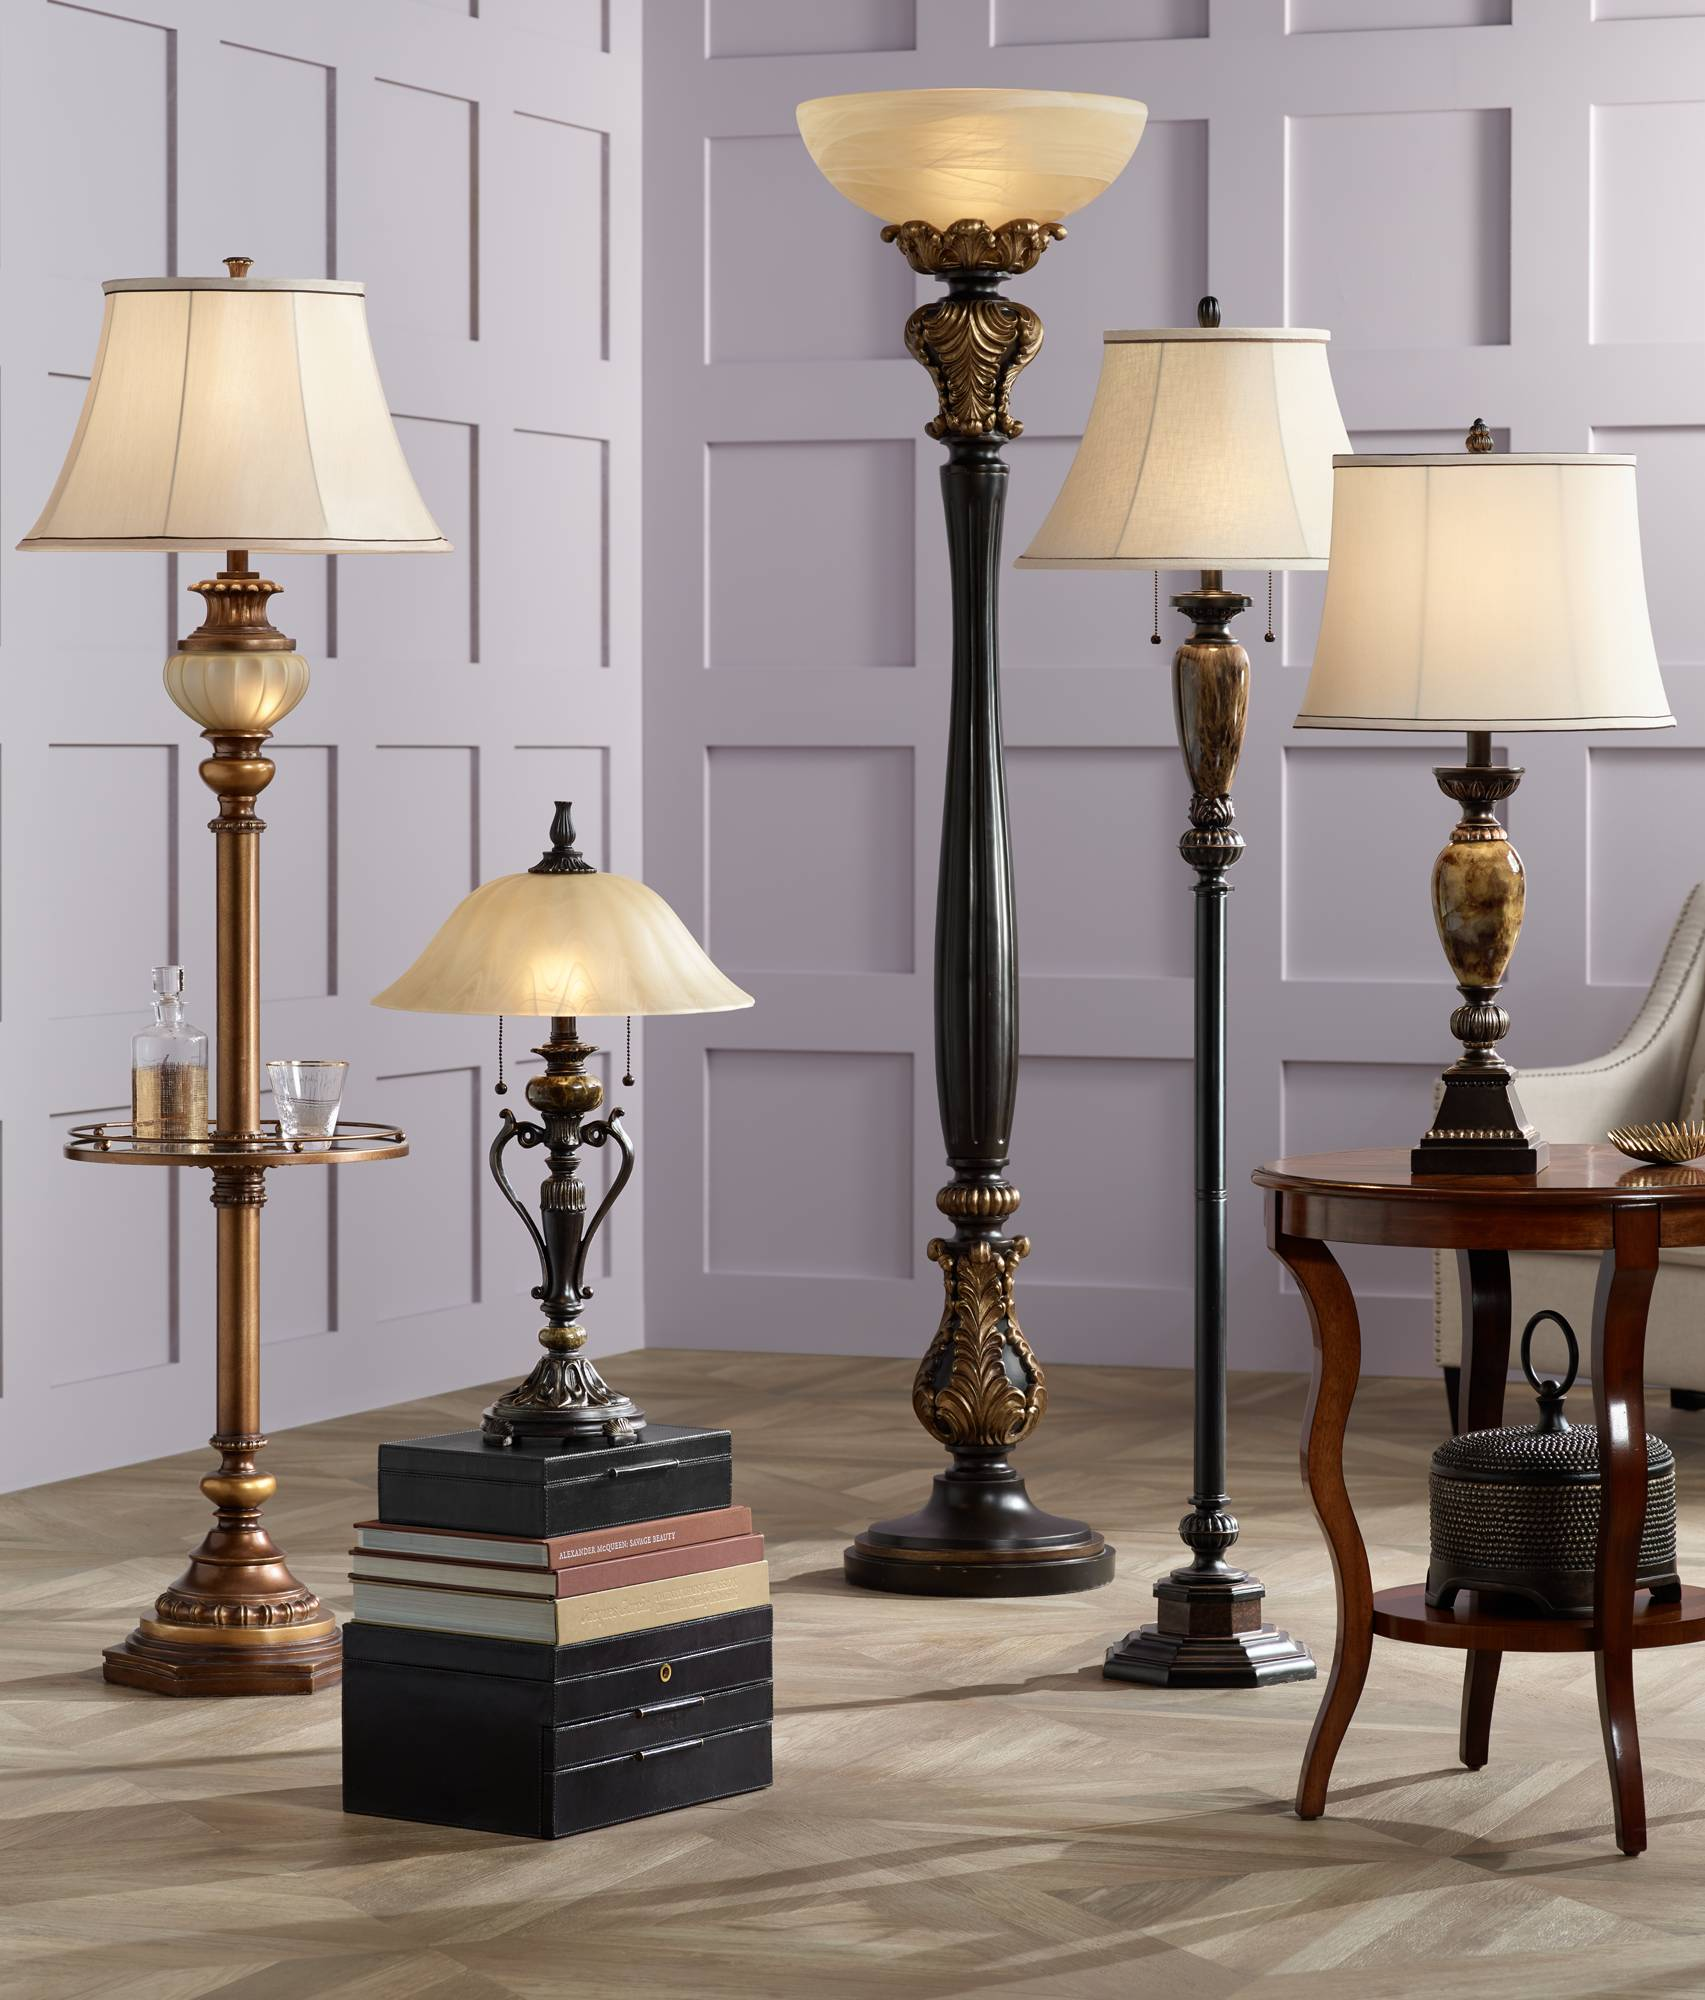 antique style bronze accent table lamp champagne glass shade twin traditional floor lamps pull chain waterproof tablecloth very small end tables patio furniture covers canadian